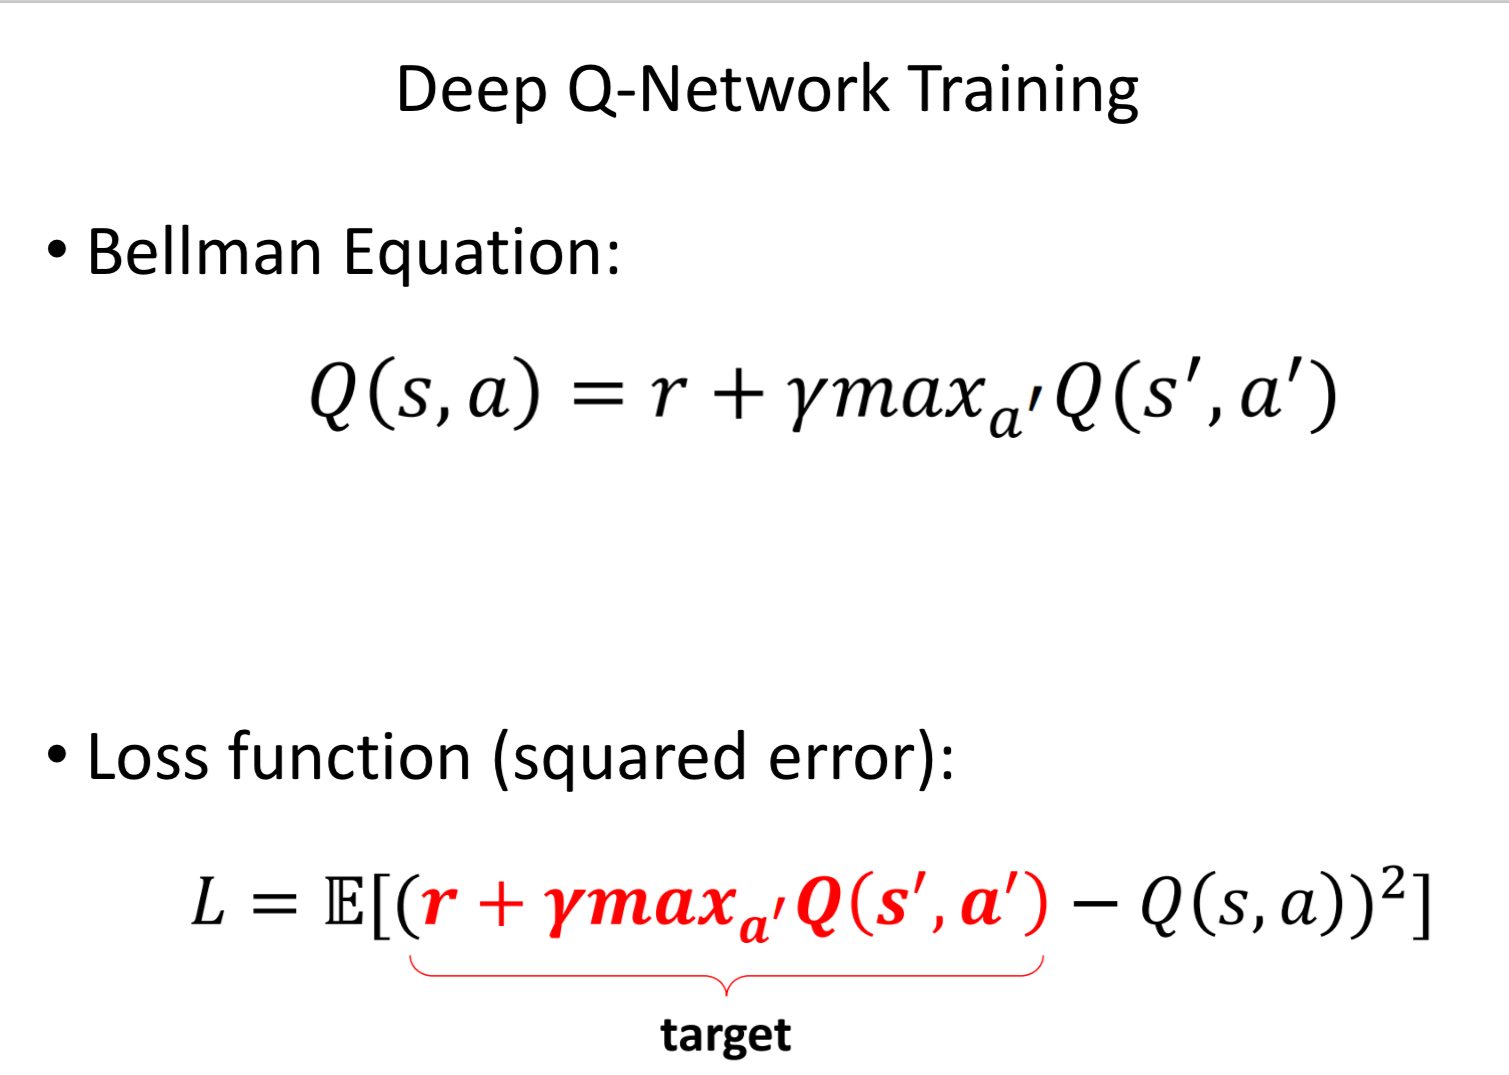 Training for a Deep Q-network